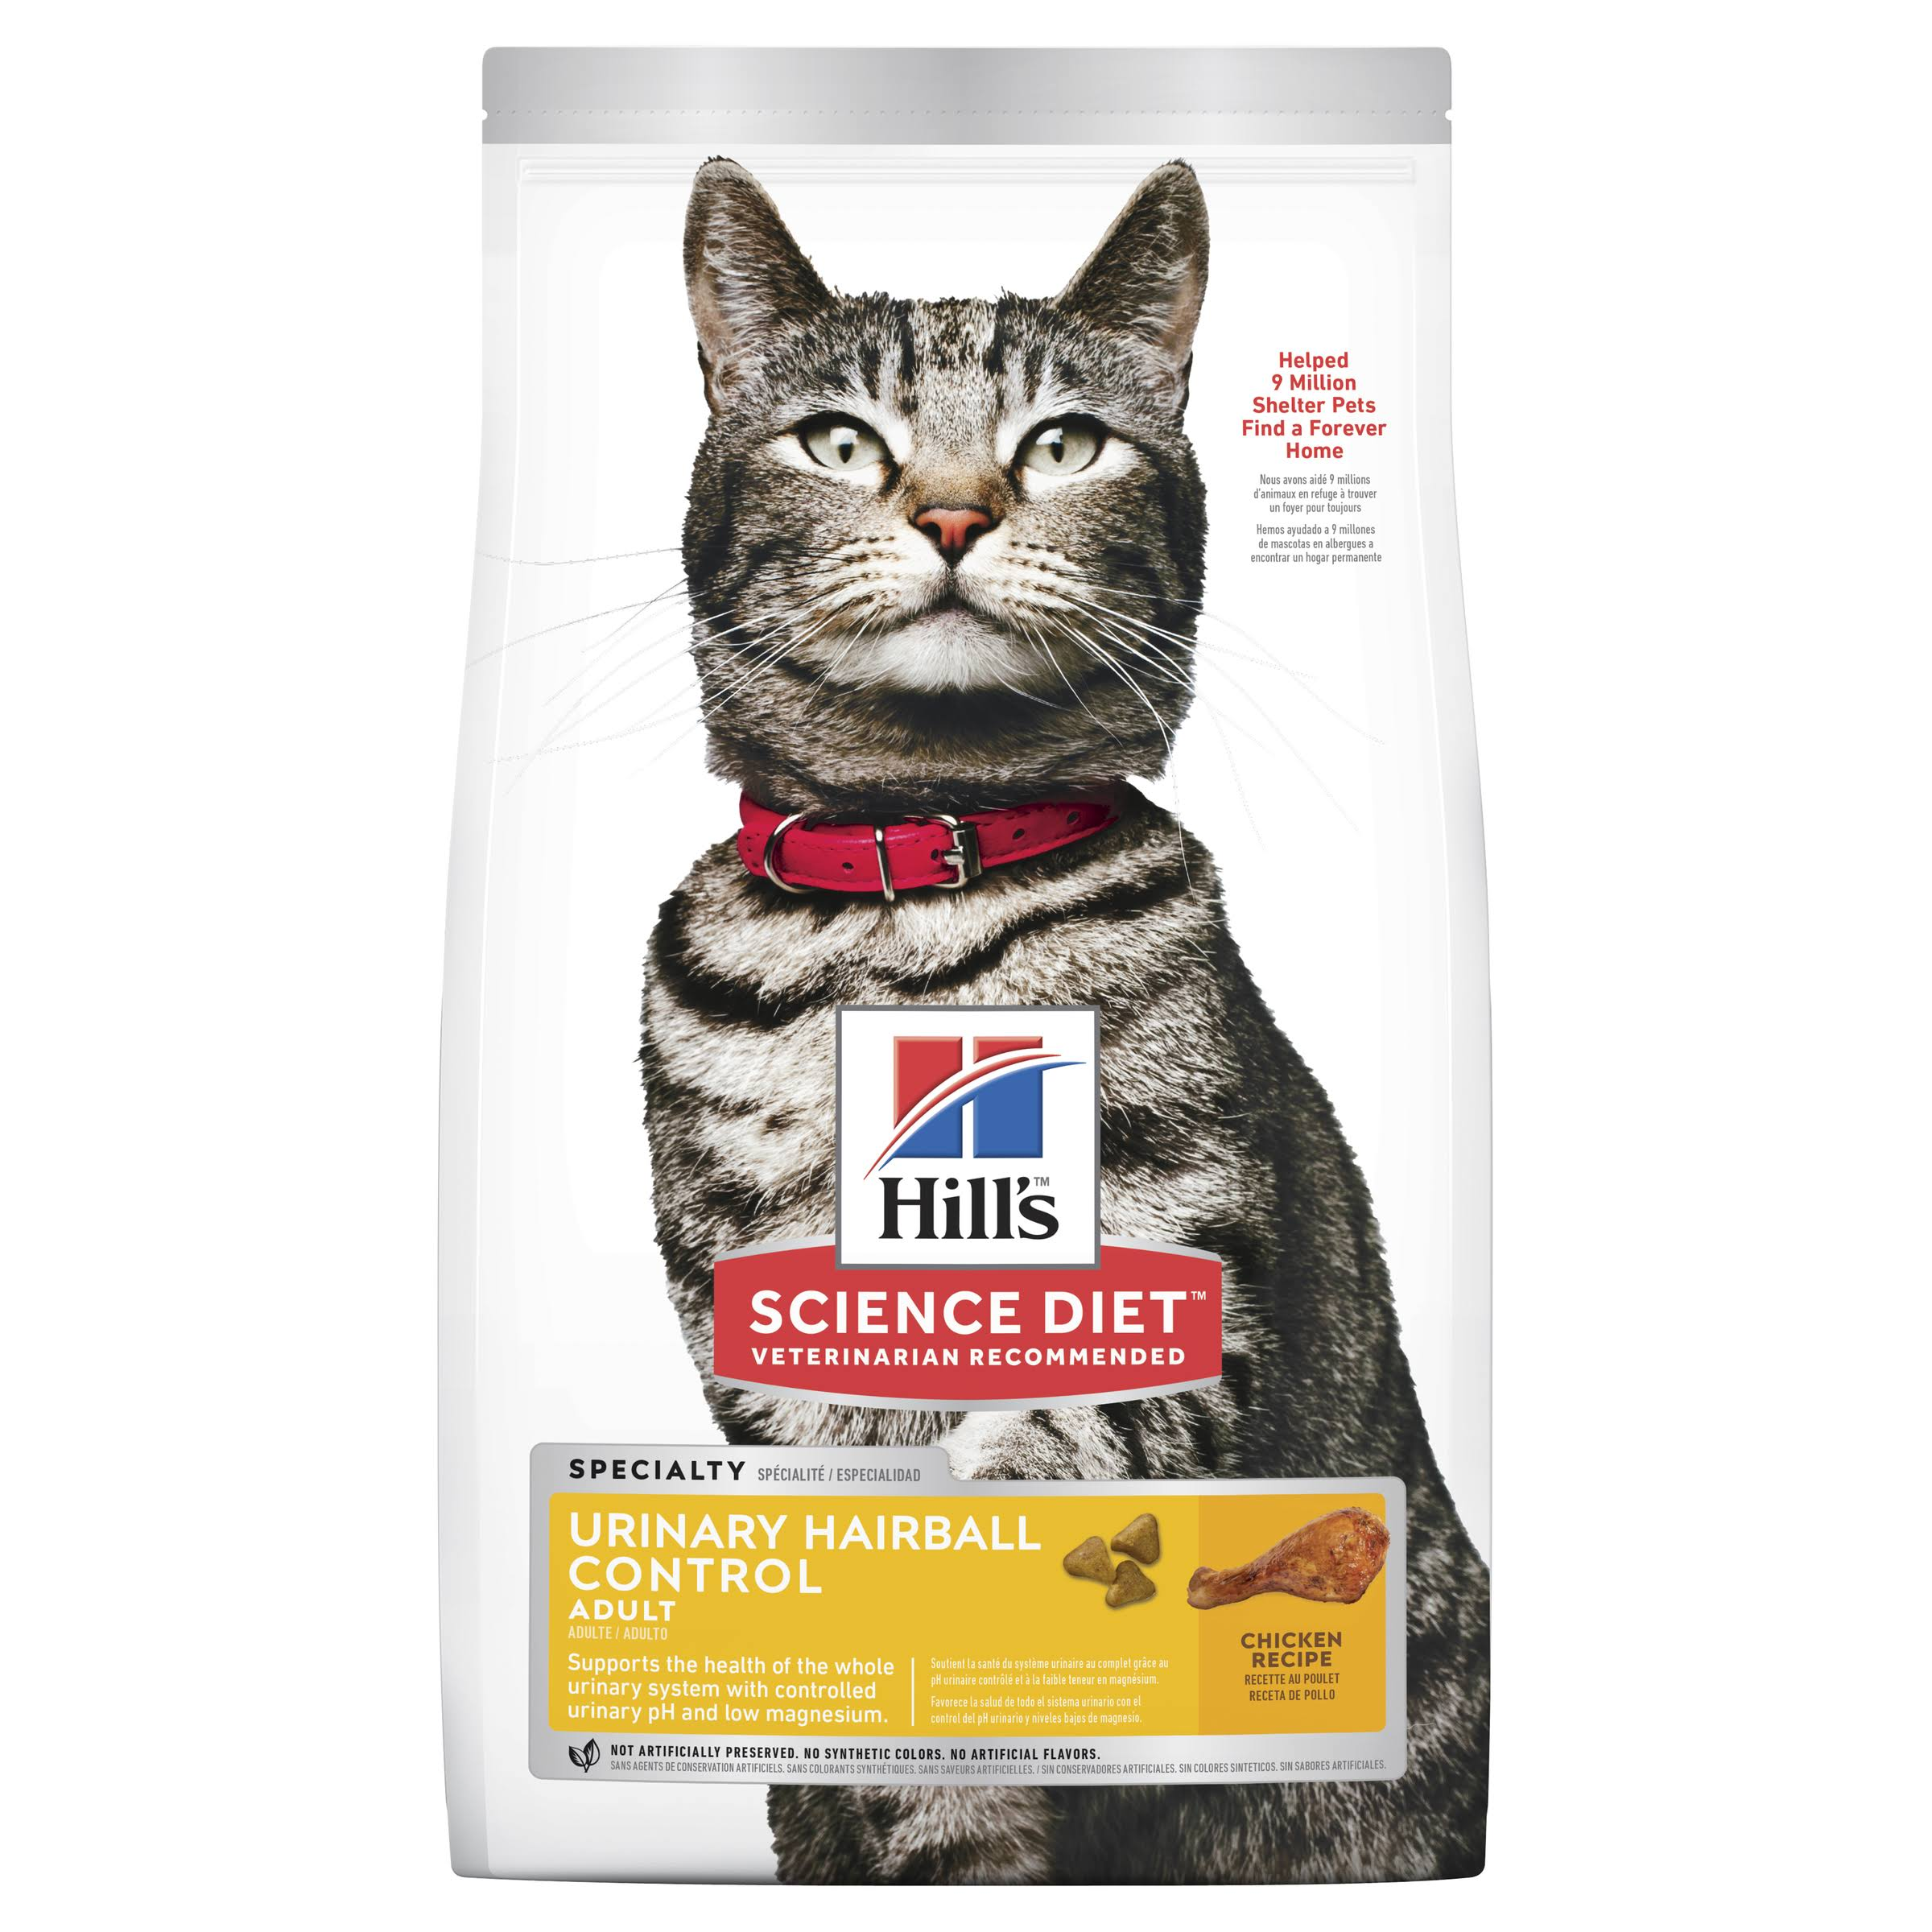 Hills Science Diet Adult Urinary Hairball Control Cat Food - Chicken, 3.5lbs